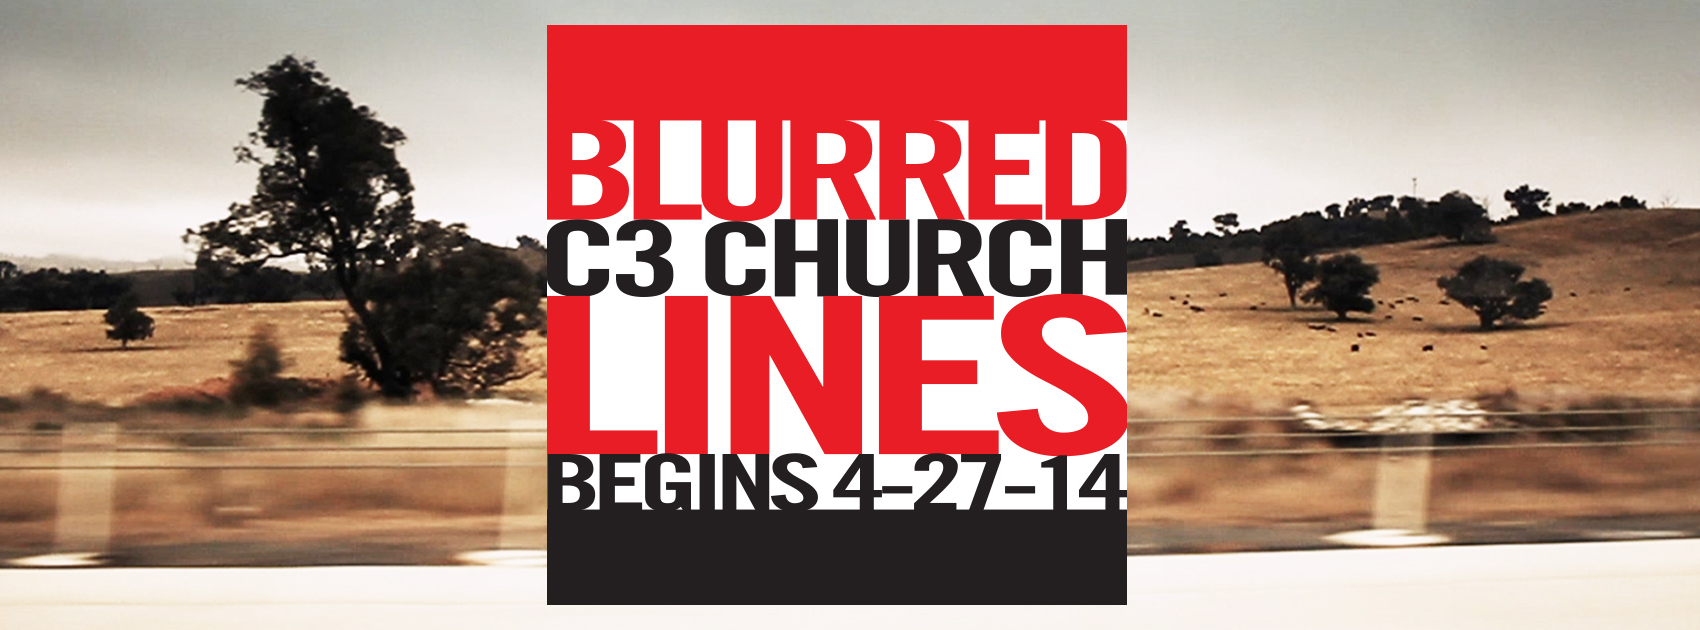 C3 Church, Blurred Lines